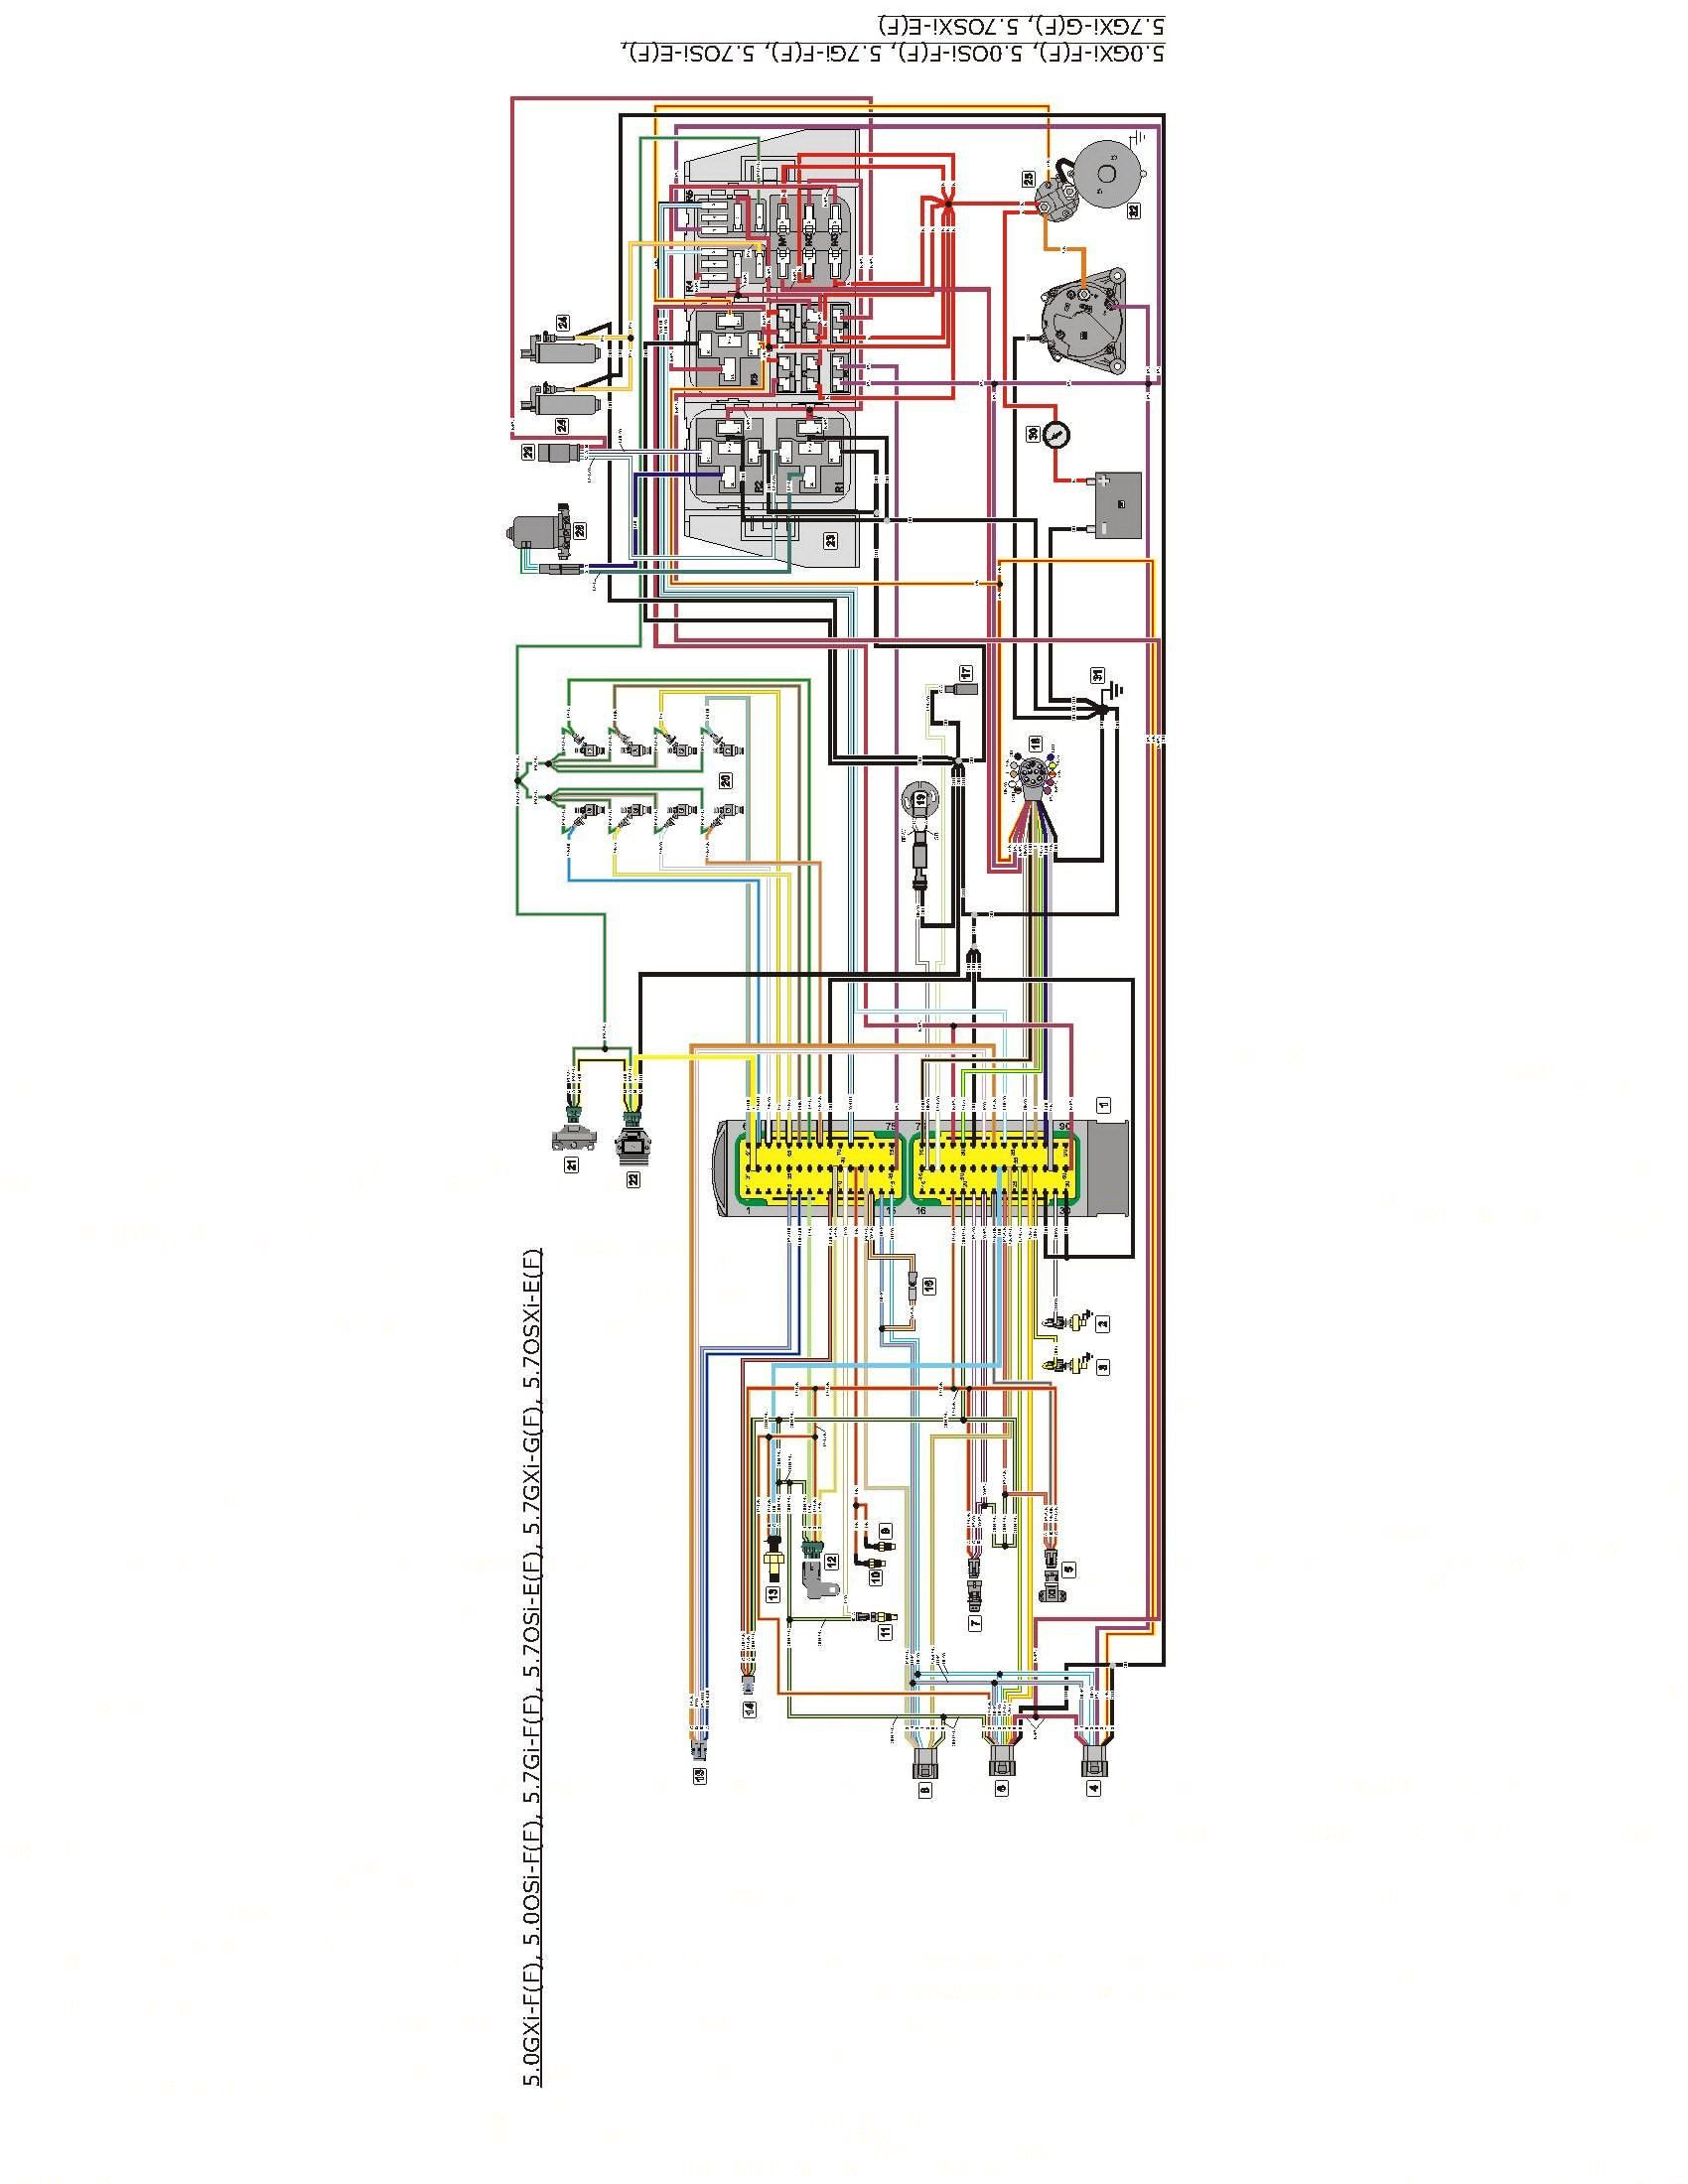 medium resolution of mercury outboard power trim wiring diagram lovely wiring diagram for volvo penta trim volvo penta trim motor volvo